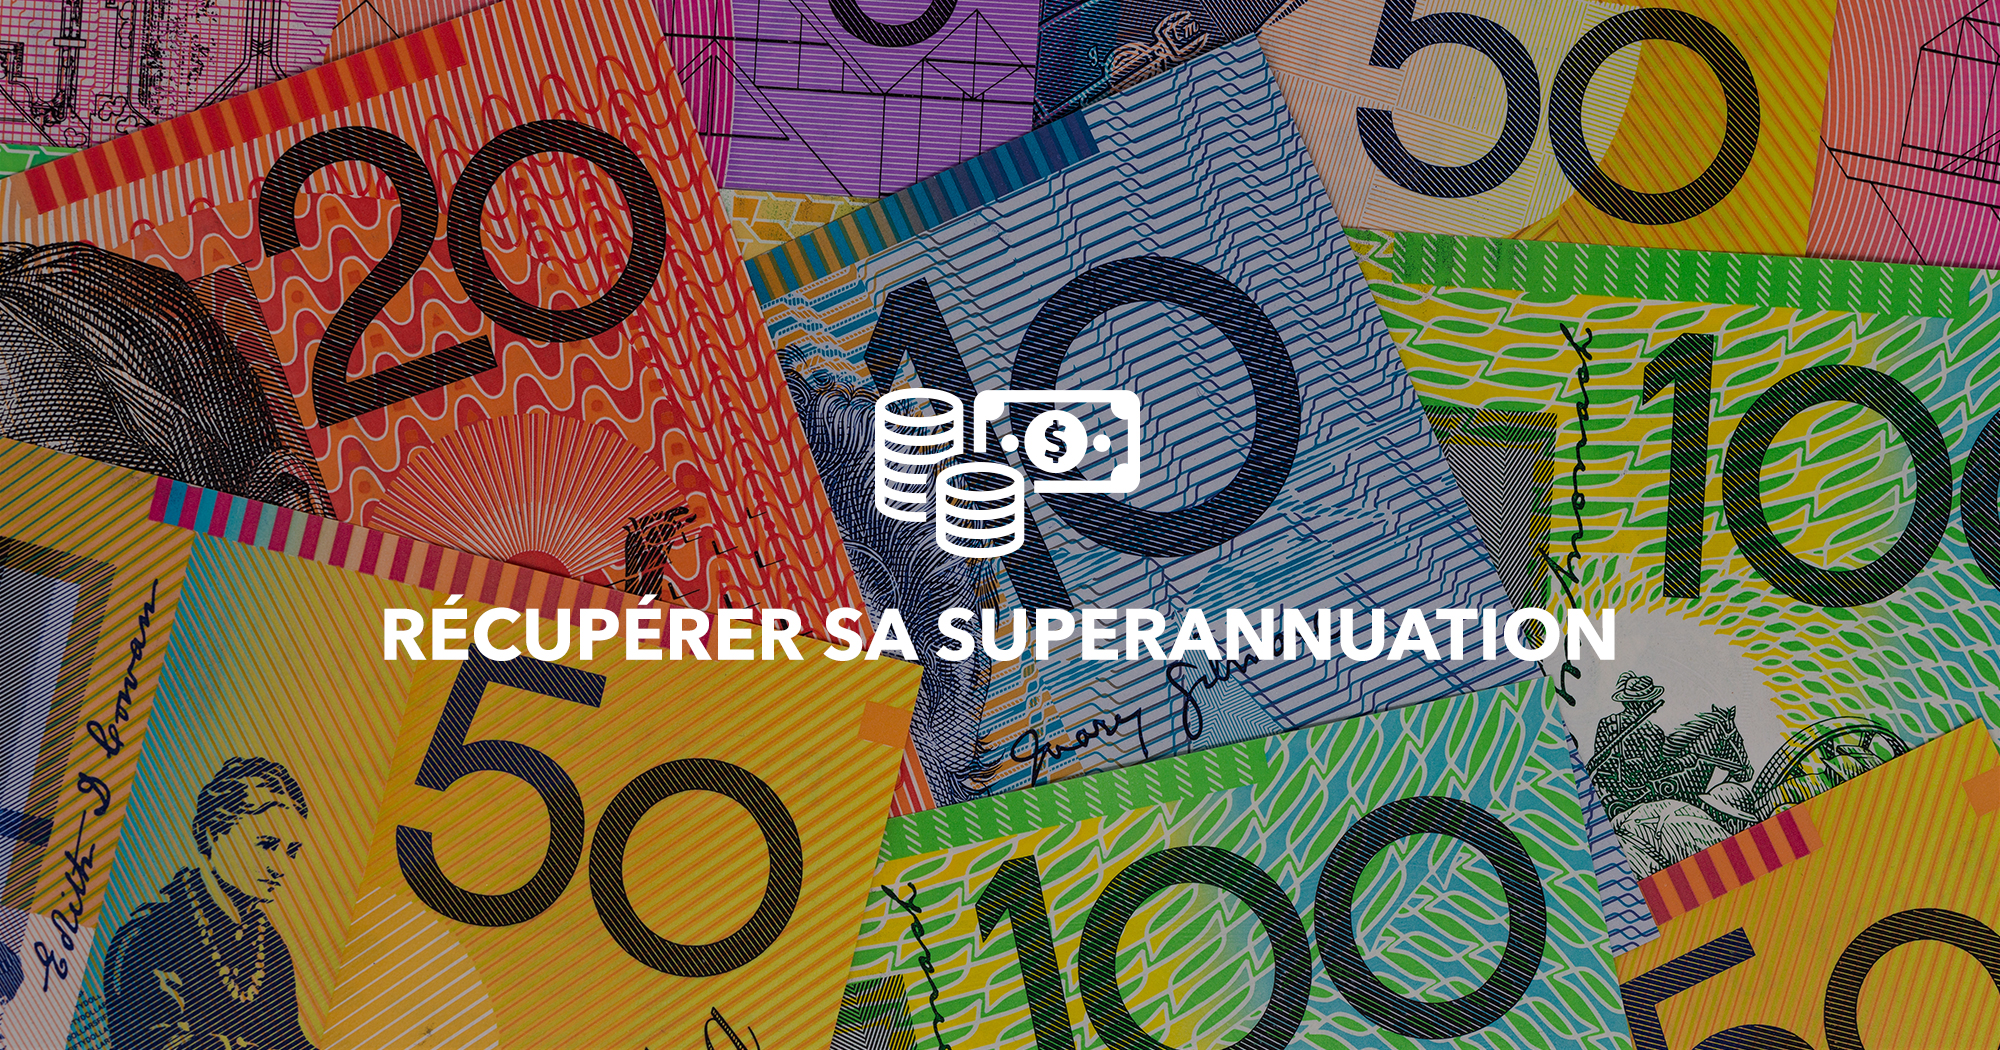 visuels-dossiers-whv-australie-recuperer-superannuation